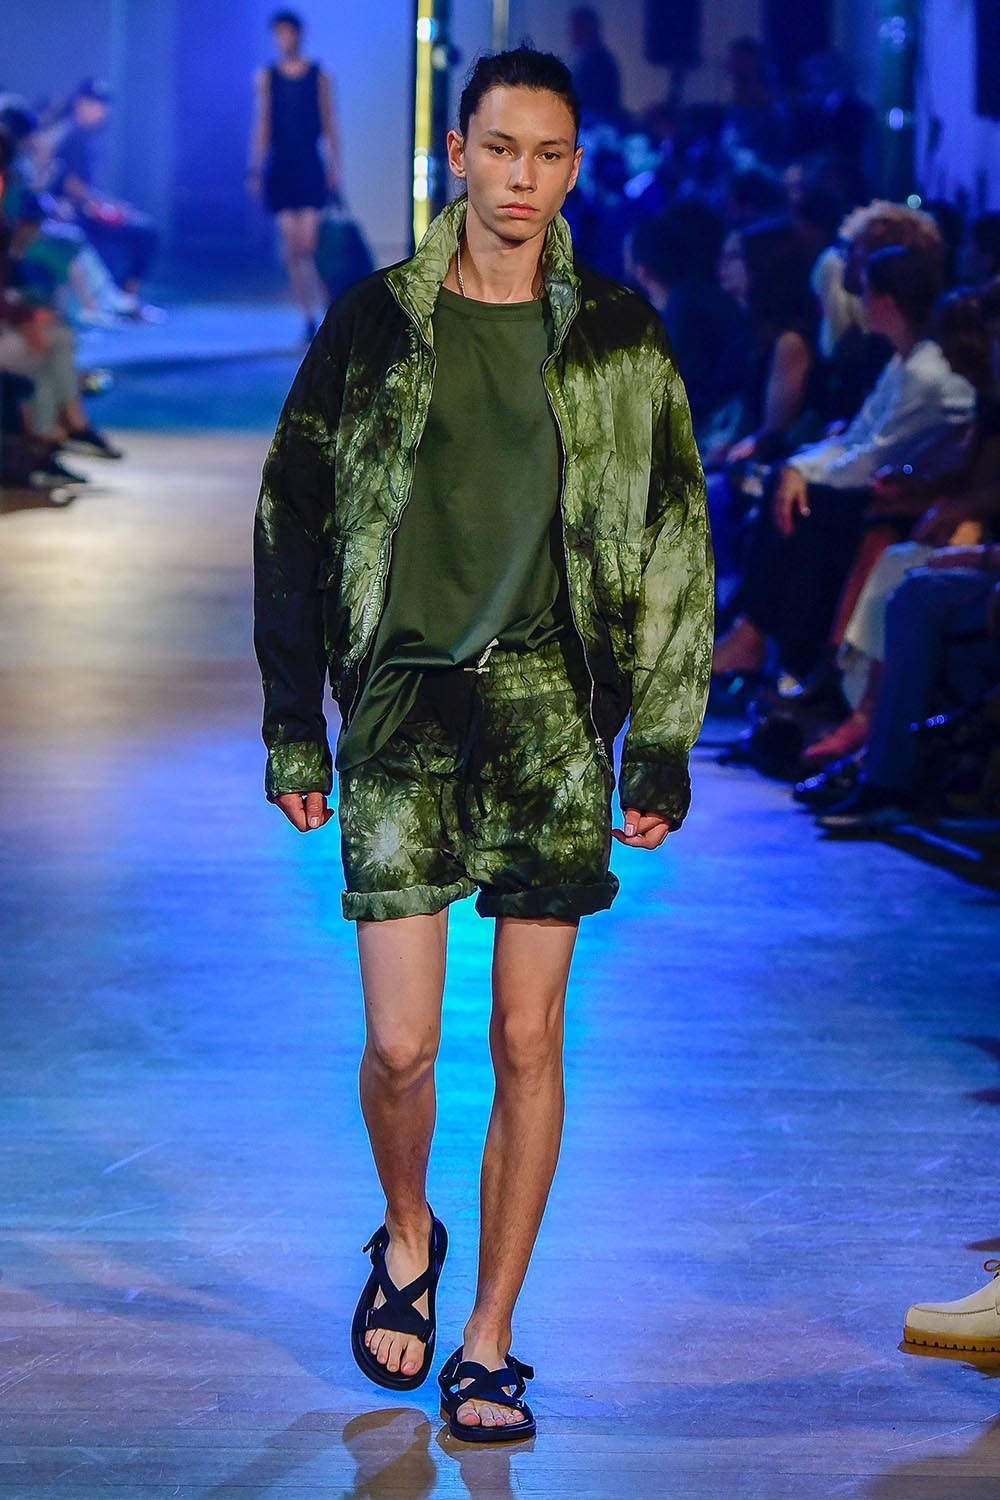 Cerruti 1881 Paris Fashion Week Men's SS19 - Sagaboi - Look 2